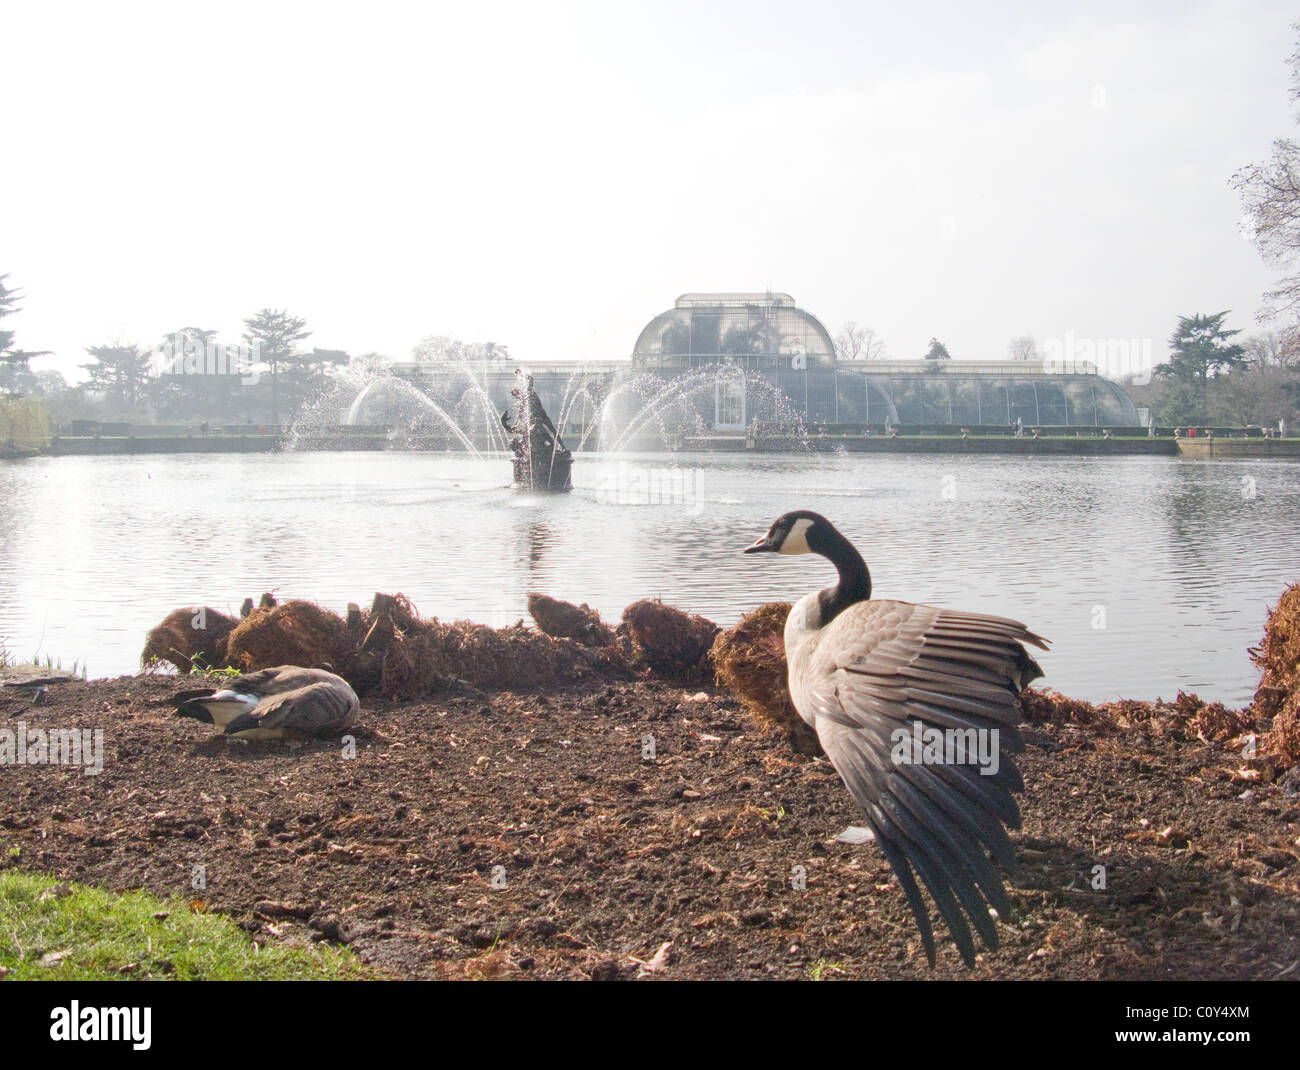 Canada Goose cheap - A Canada Goose Stretches Its Wing In Kew Gardens, London. In The ...